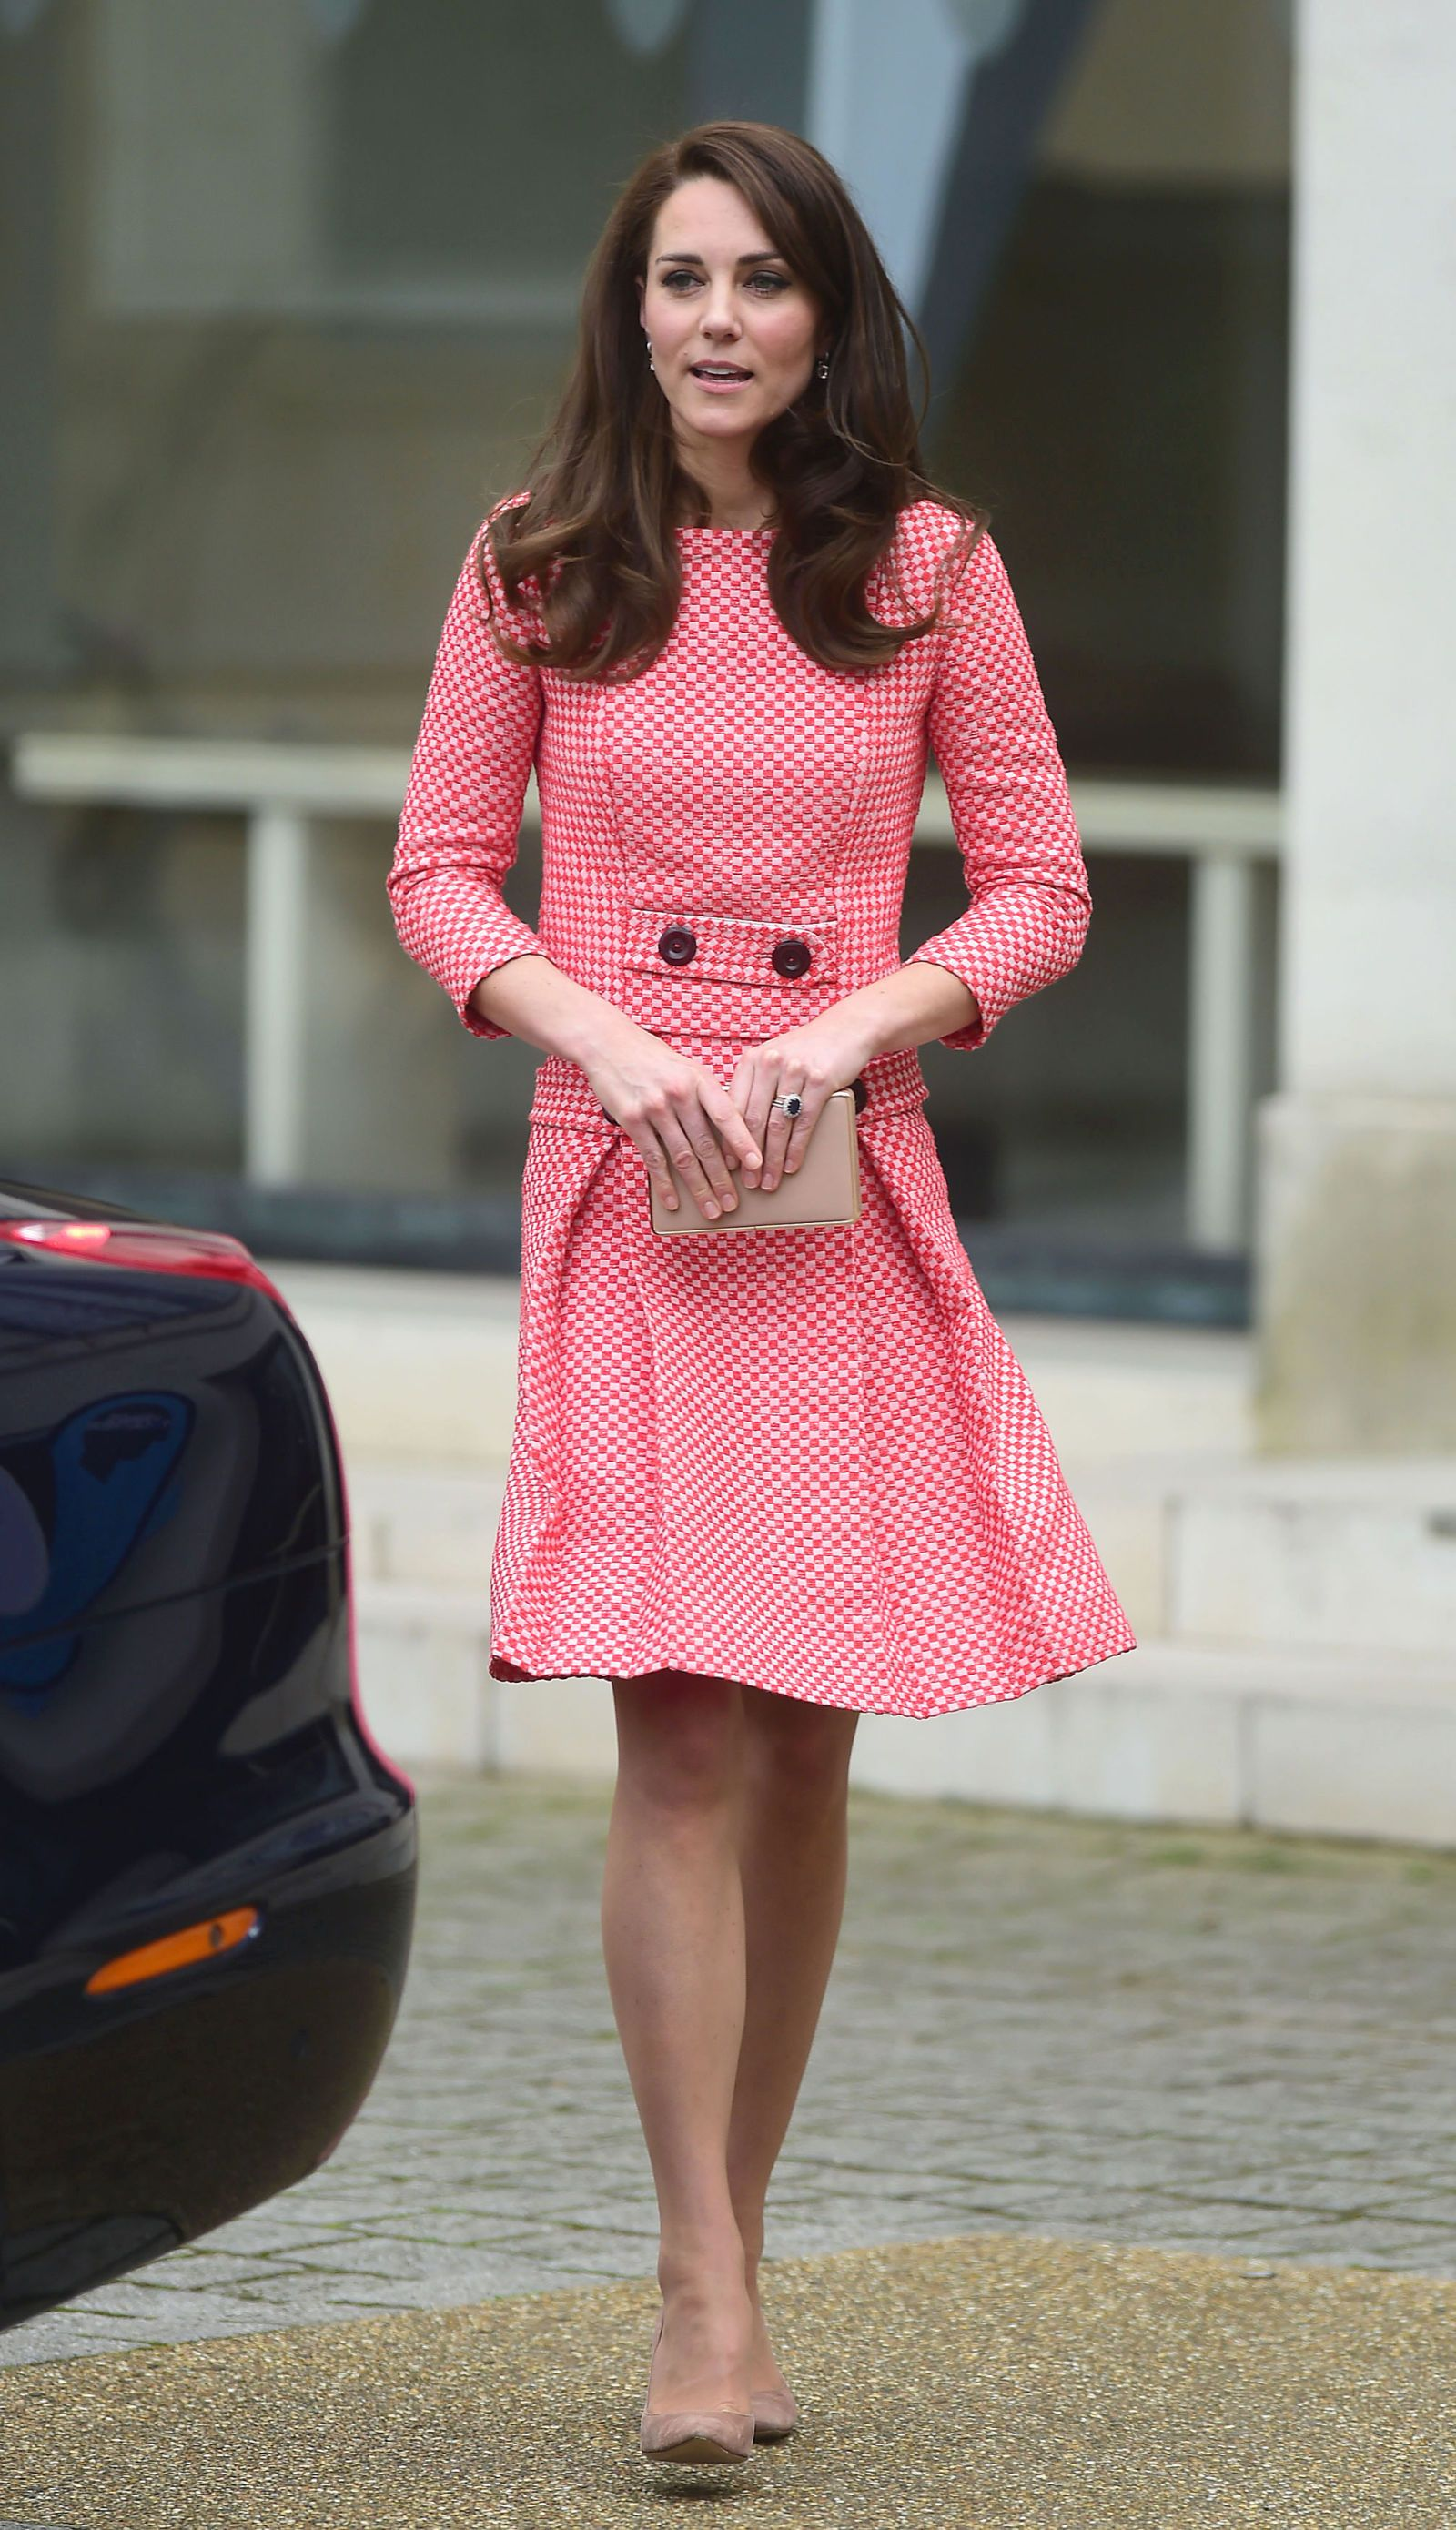 Kate Middleton Continues Her Chic Maternity Streak in a Mod Minidress